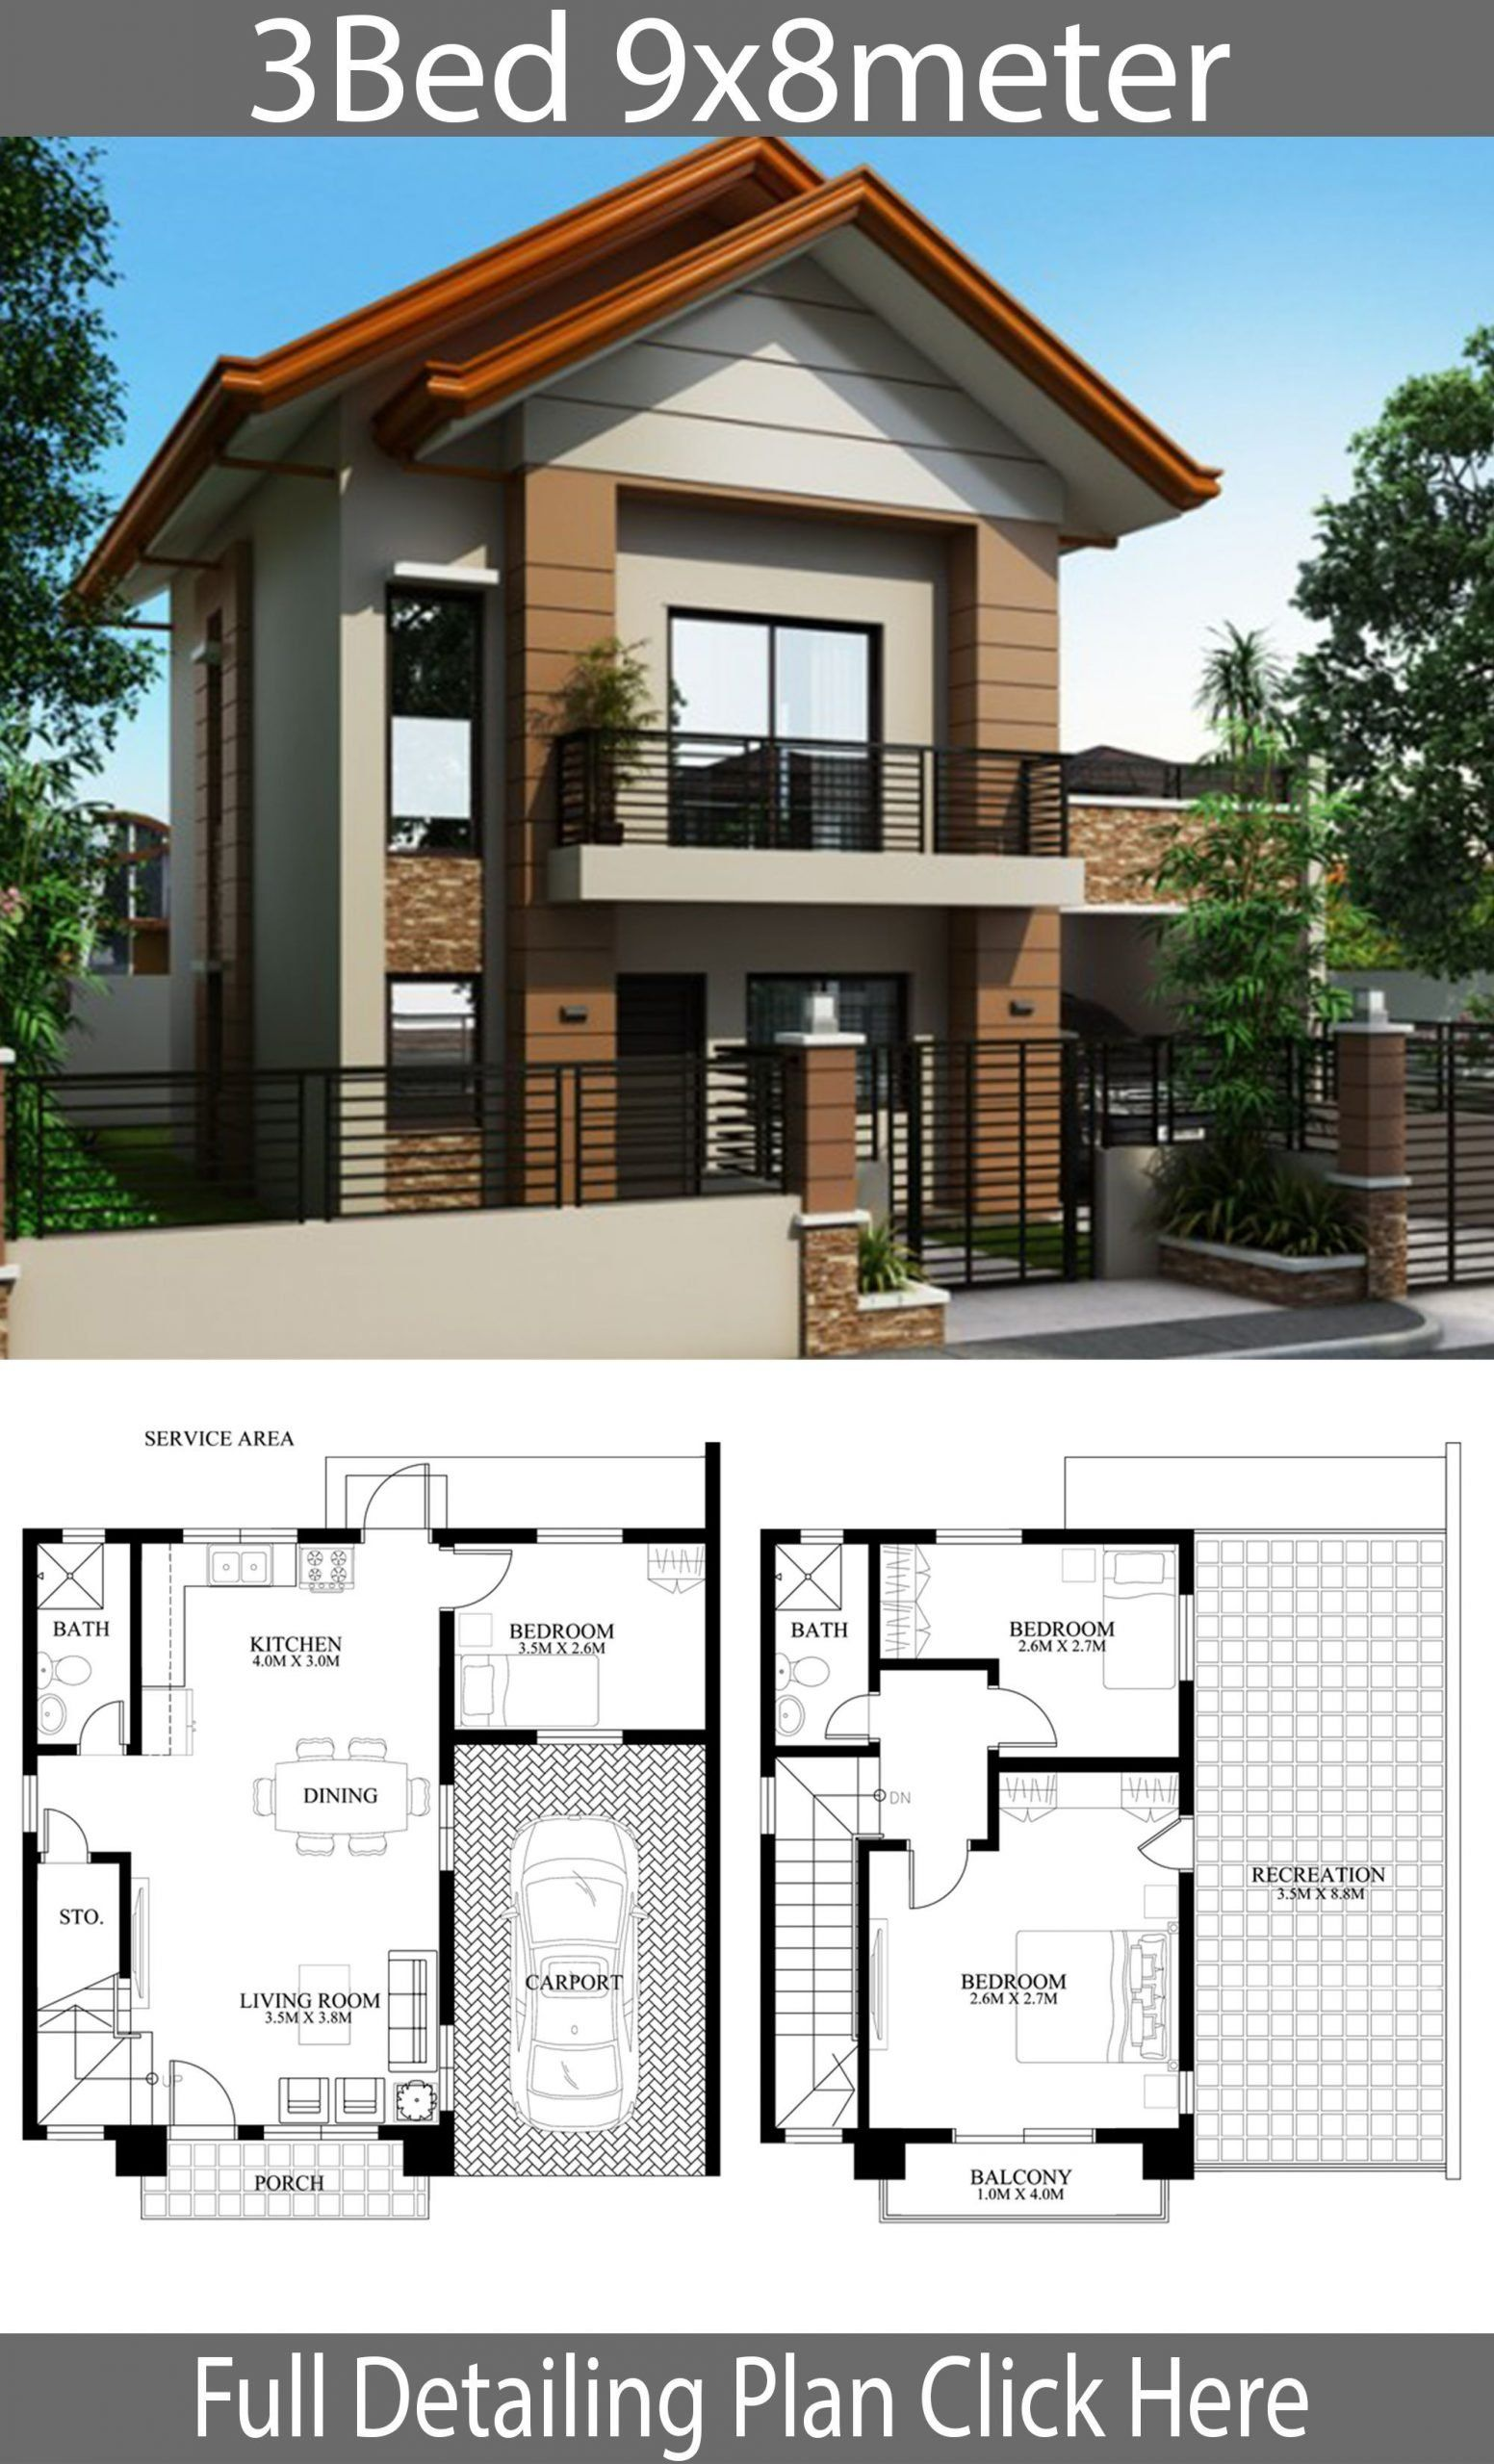 20 Modern House Designs 2 Story Gedangrojo Best In 2020 Model House Plan 2 Storey House Design Philippines House Design